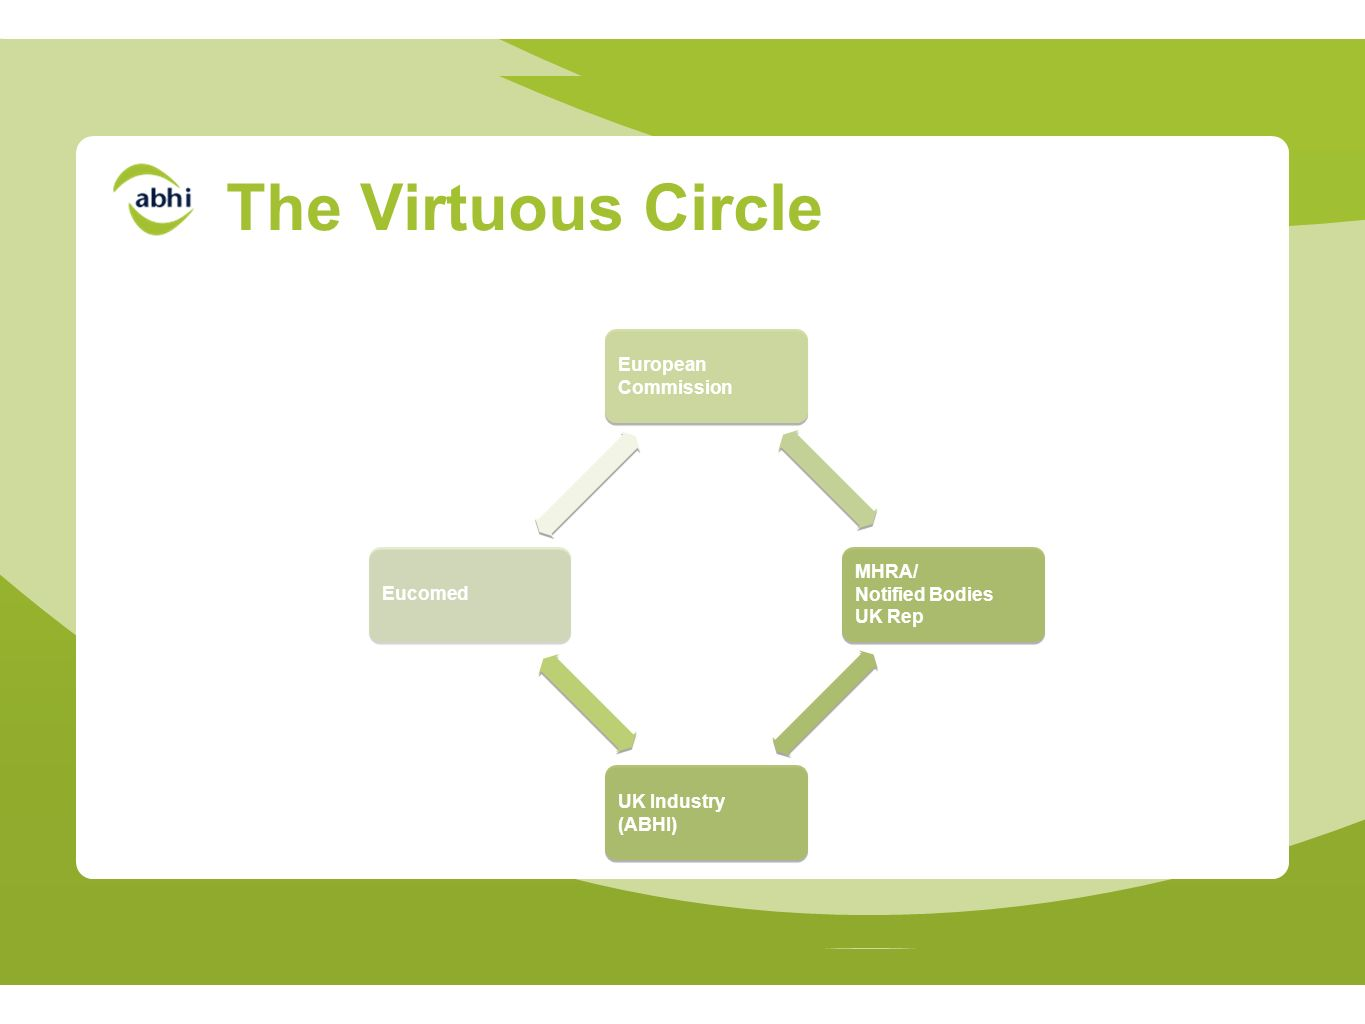 The Virtuous Circle European Commission MHRA/ Notified Bodies UK Rep